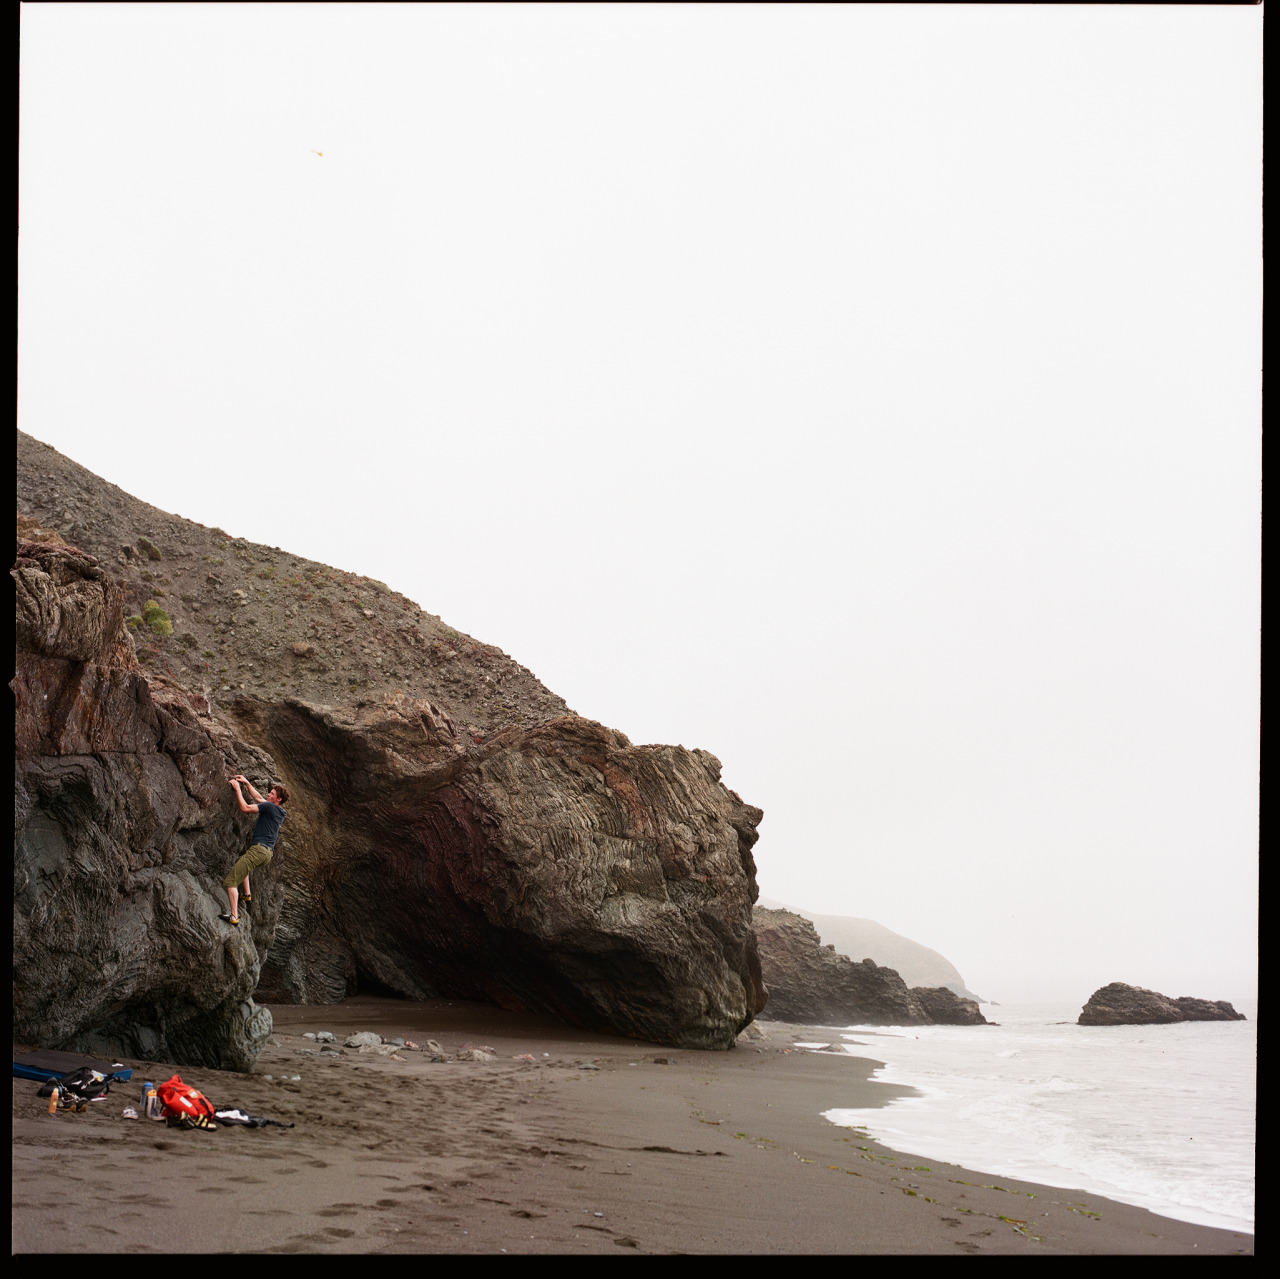 Nick Fisher bouldering at Black Sand Beach. Marin, CA | 2013